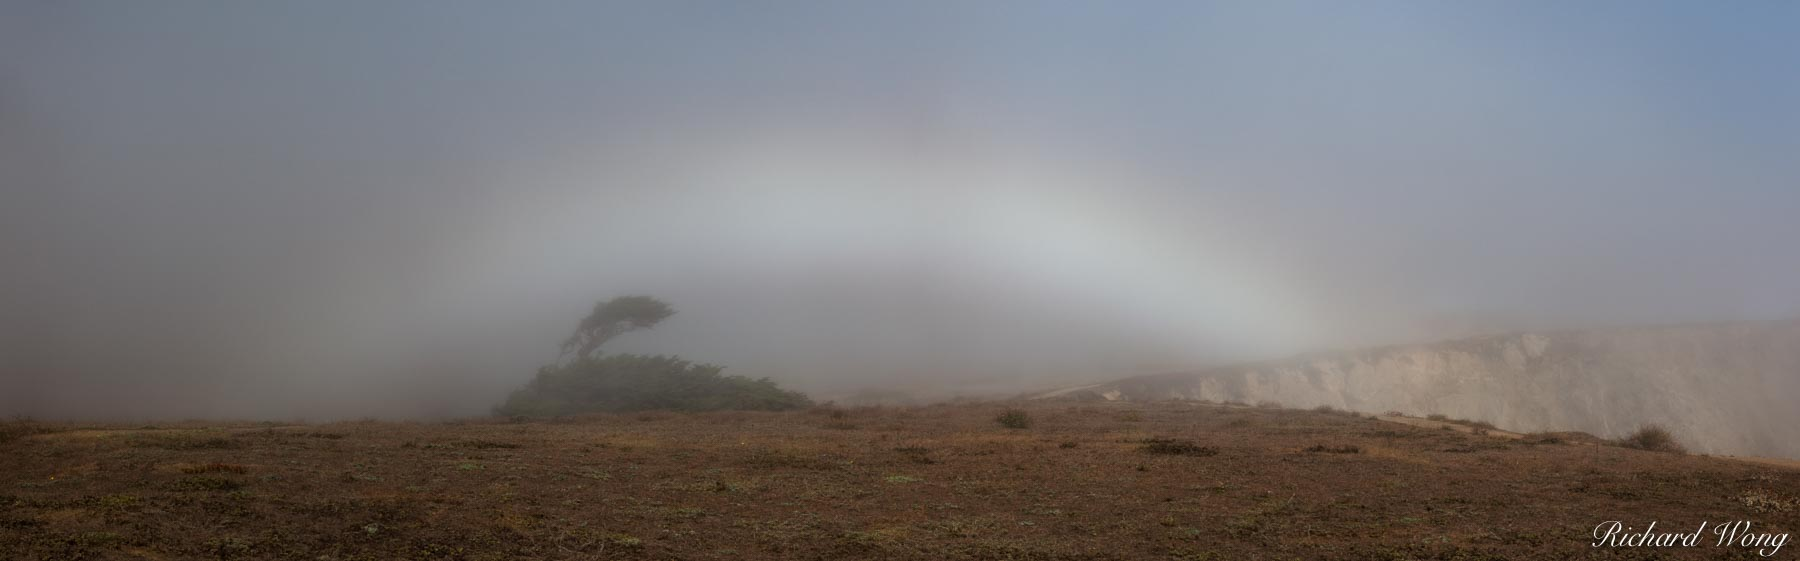 Fogbow Panoramic at Bodega Head, Sonoma Coast, California, photo, photo